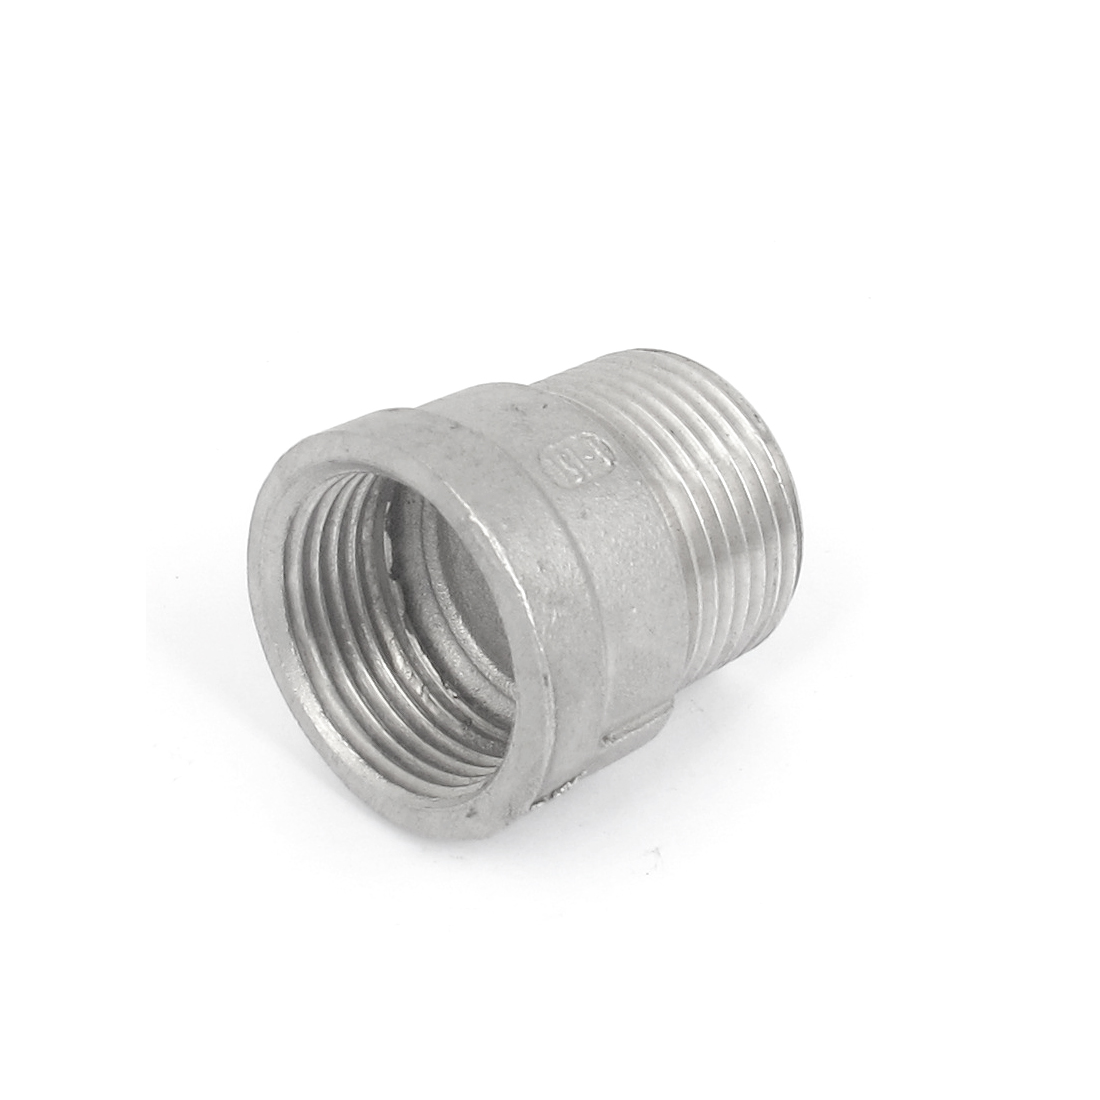 33mm Male to 29mm Female Hex Head Bushing Straight Connector Silver Tone